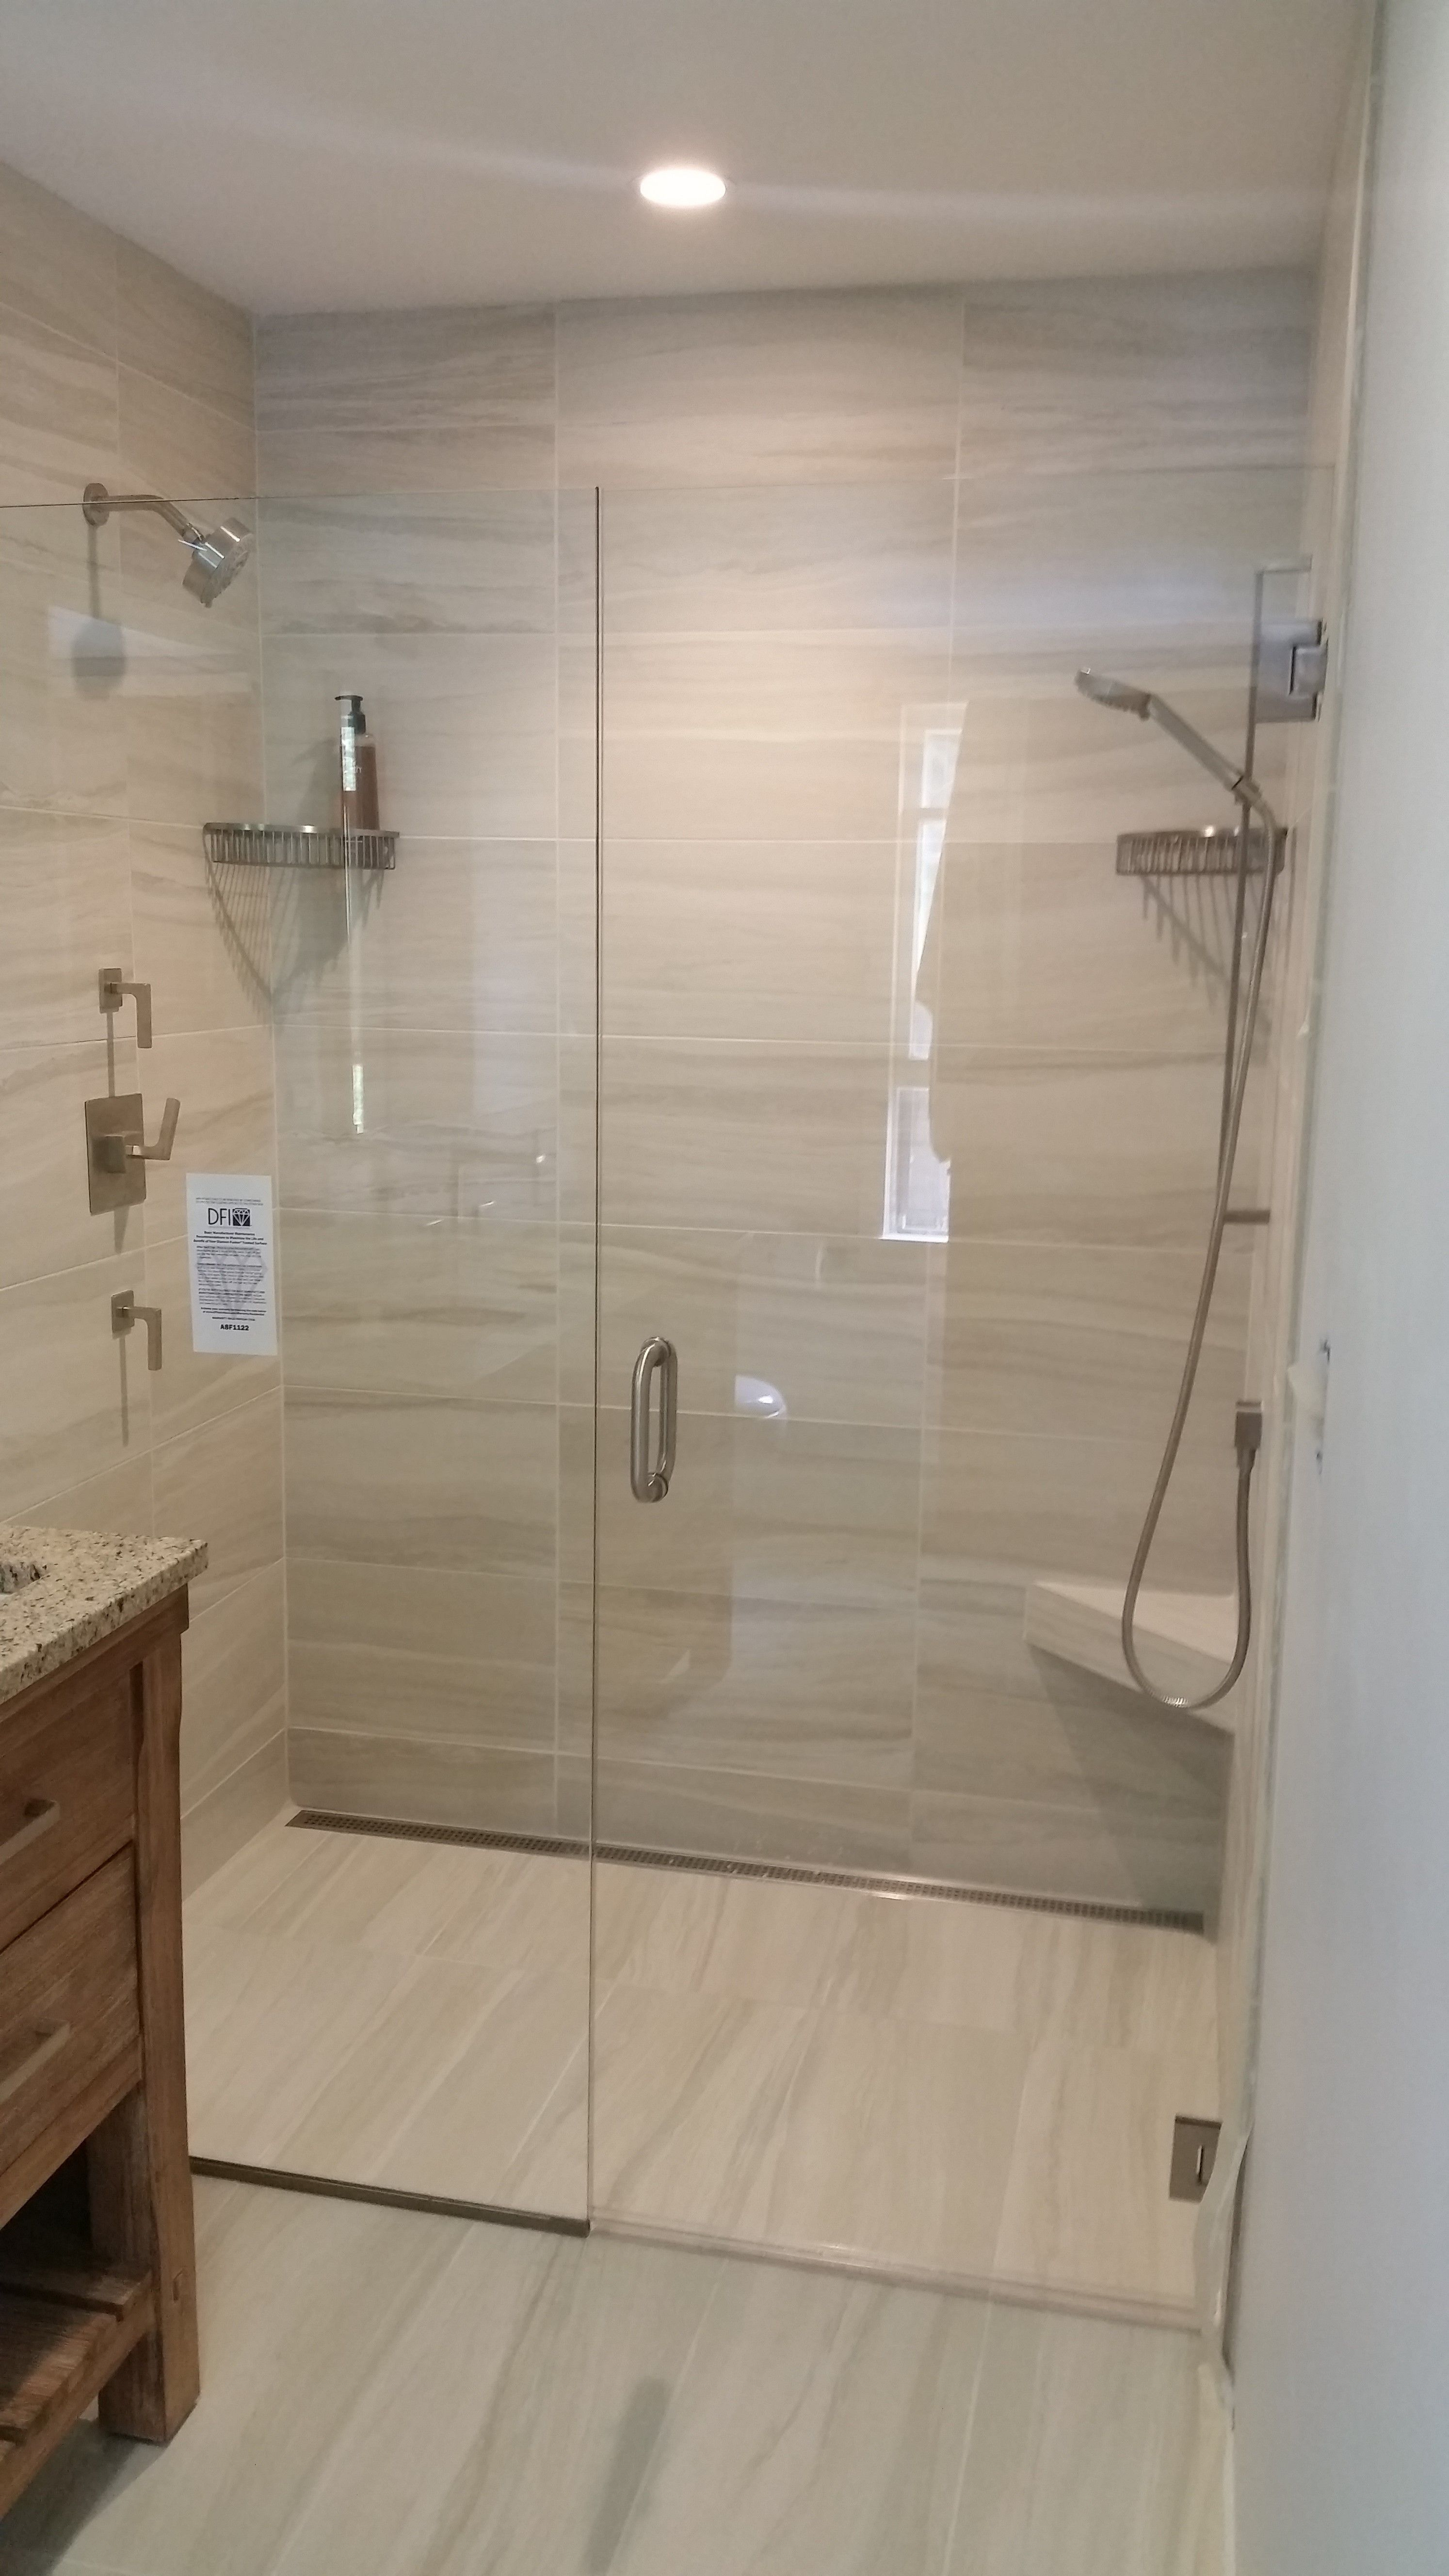 Curbless shower installation by Valley Floors. | Bathroom ...